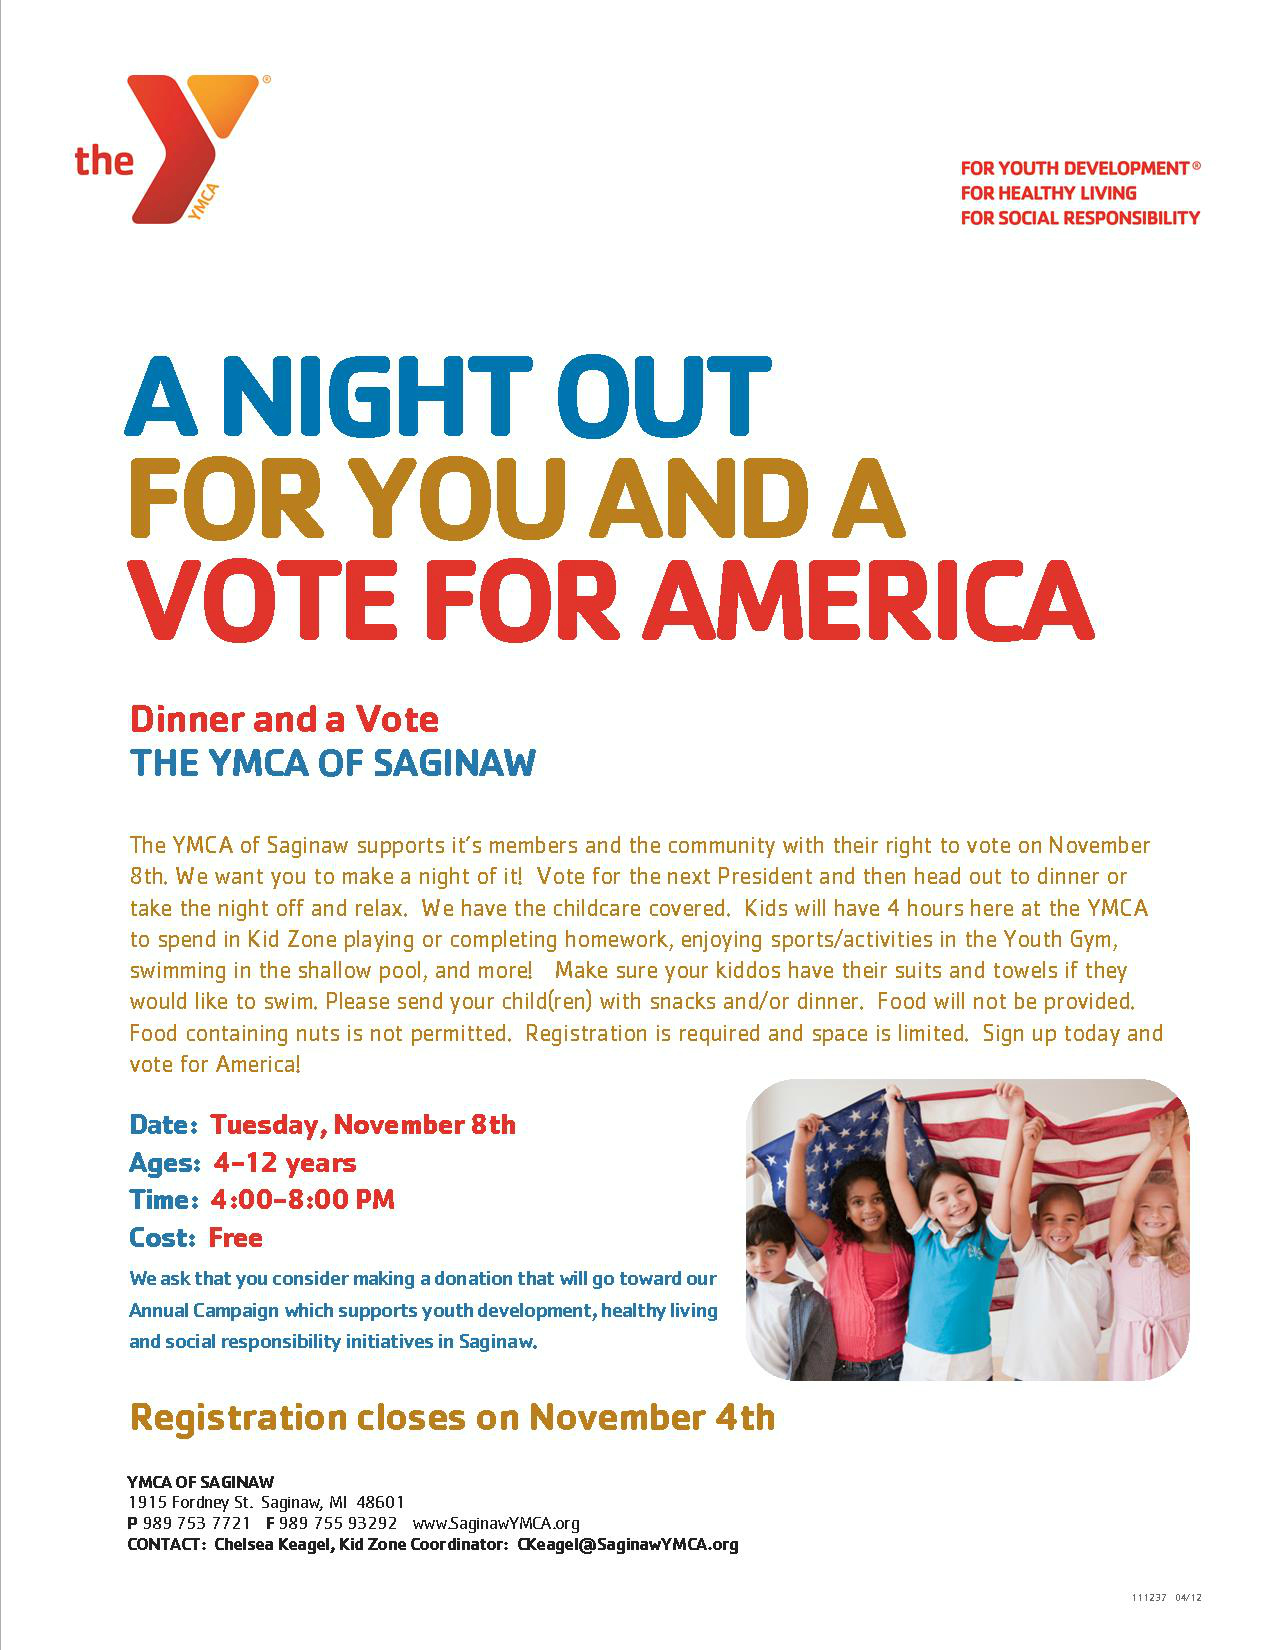 Dinner and a Vote @ YMCA of Saginaw